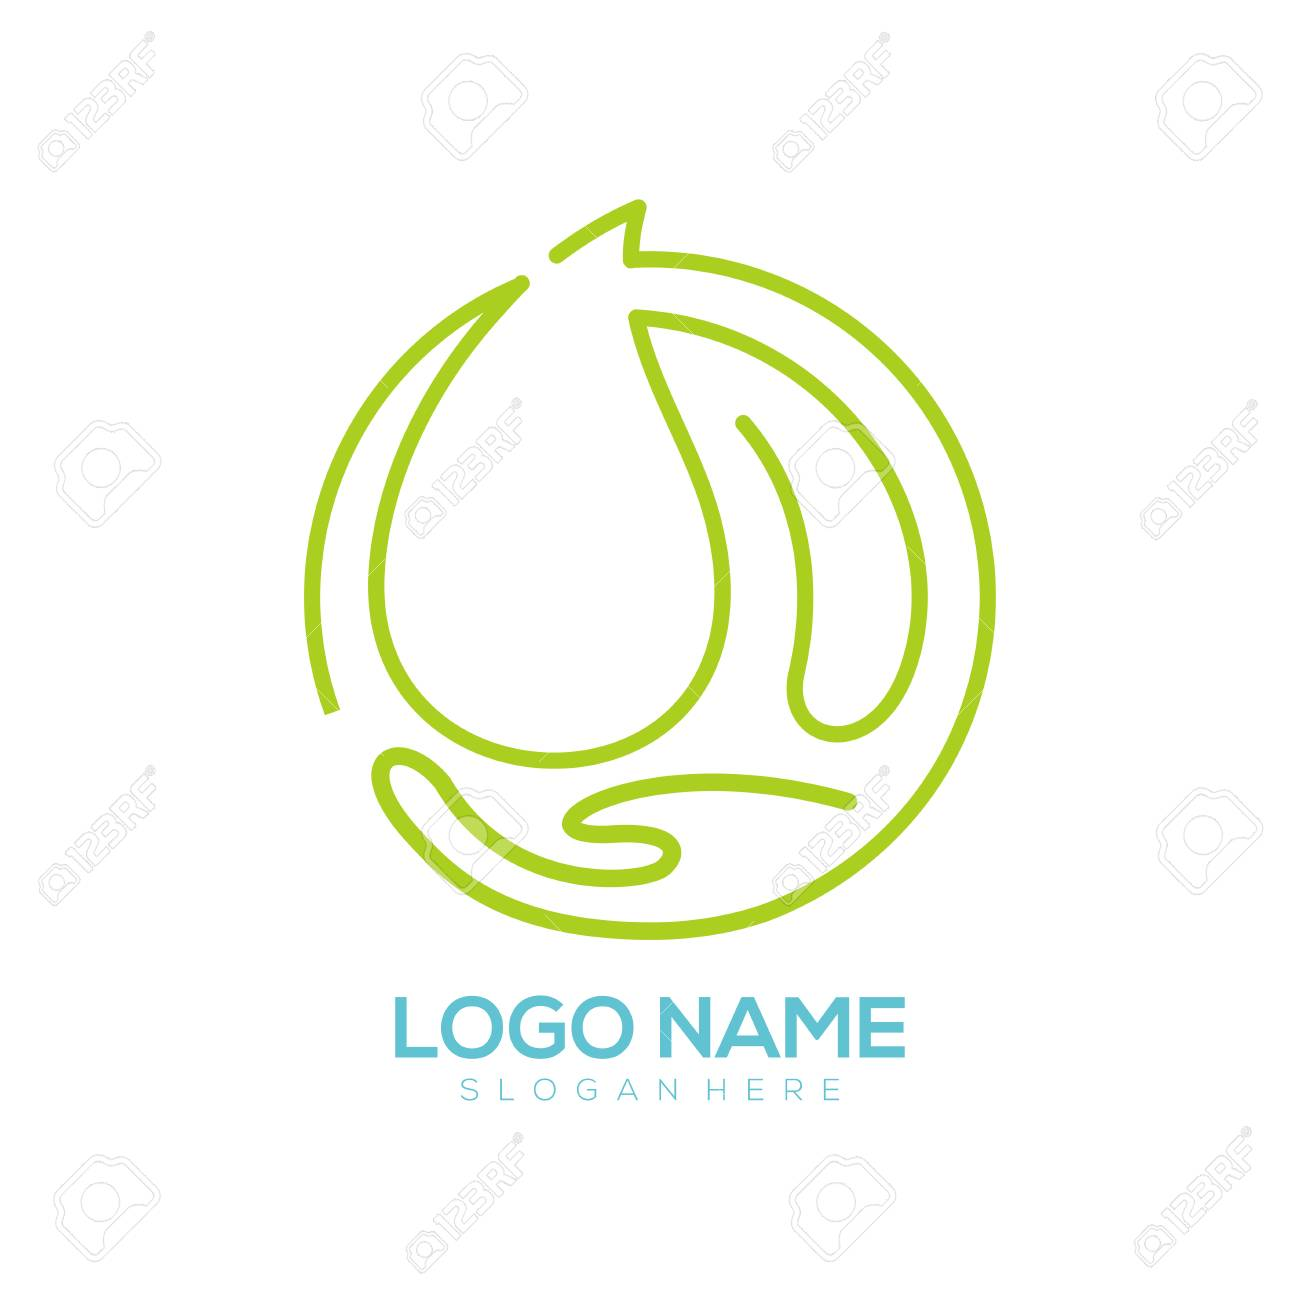 Environment logo and icon design suitable for your business, company and personal branding - 118633052